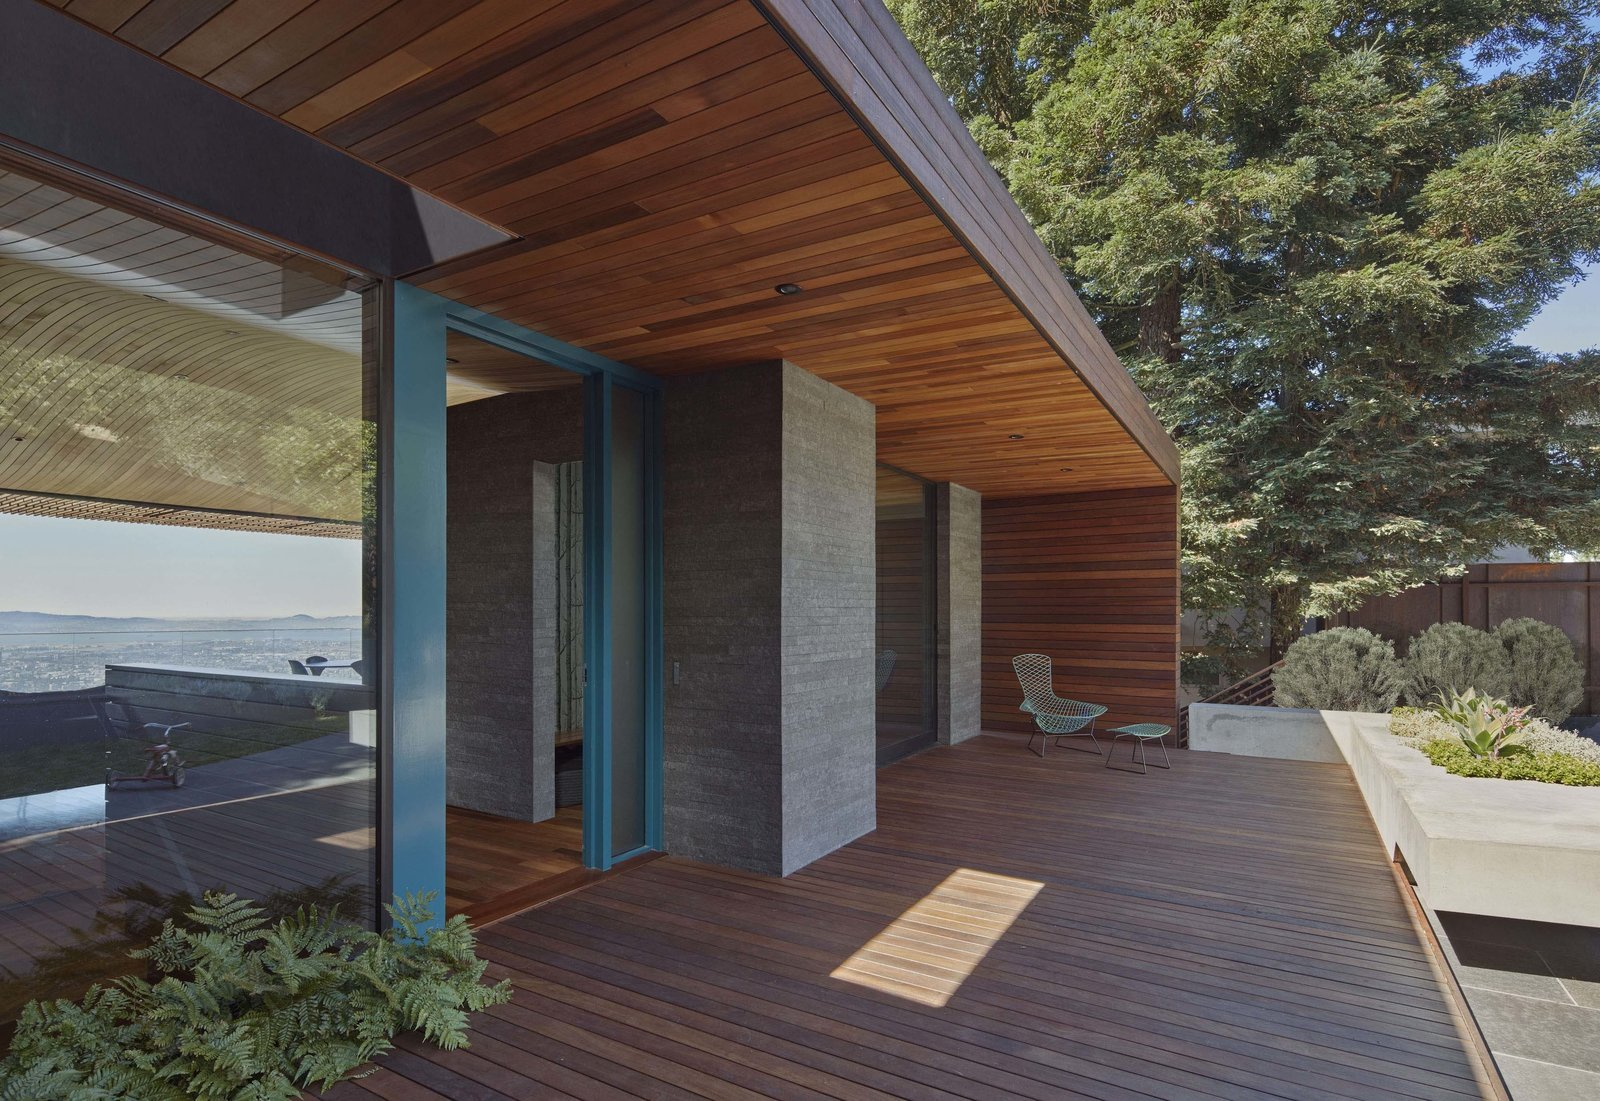 Entry porch Tagged: Outdoor, Front Yard, Grass, Shrubs, Hardscapes, Small Patio, Porch, Deck, Wood Patio, Porch, Deck, Metal Fences, Wall, and Landscape Lighting.  Skyline House by Terry & Terry Architecture